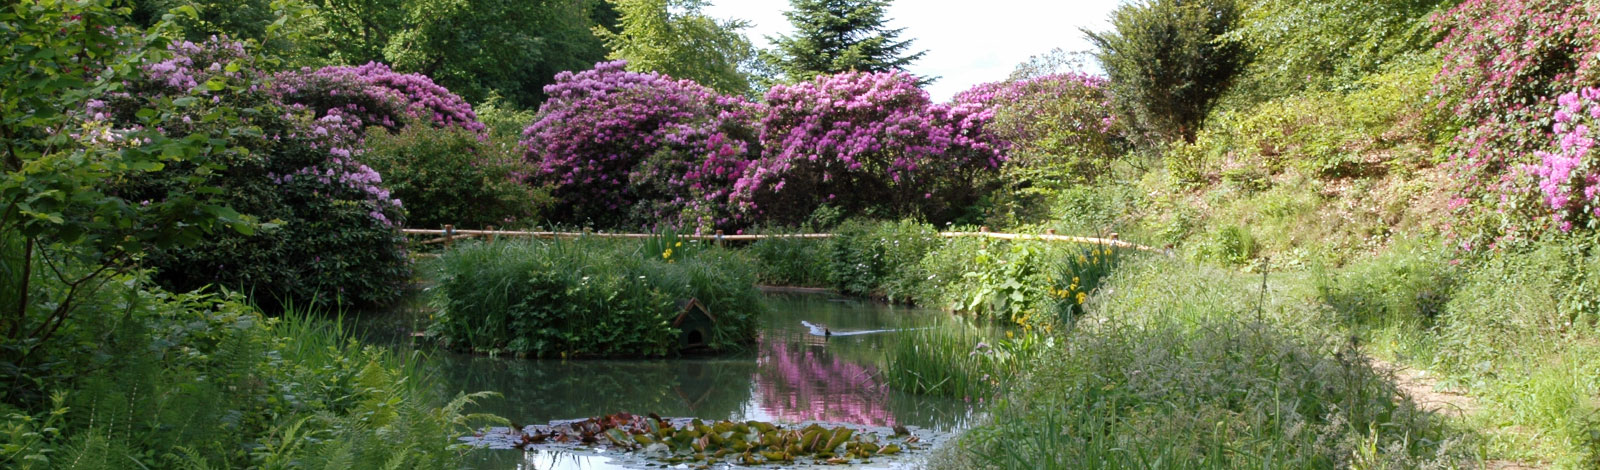 Great beautiful rhodododendron adorns the park in the spring and early summer